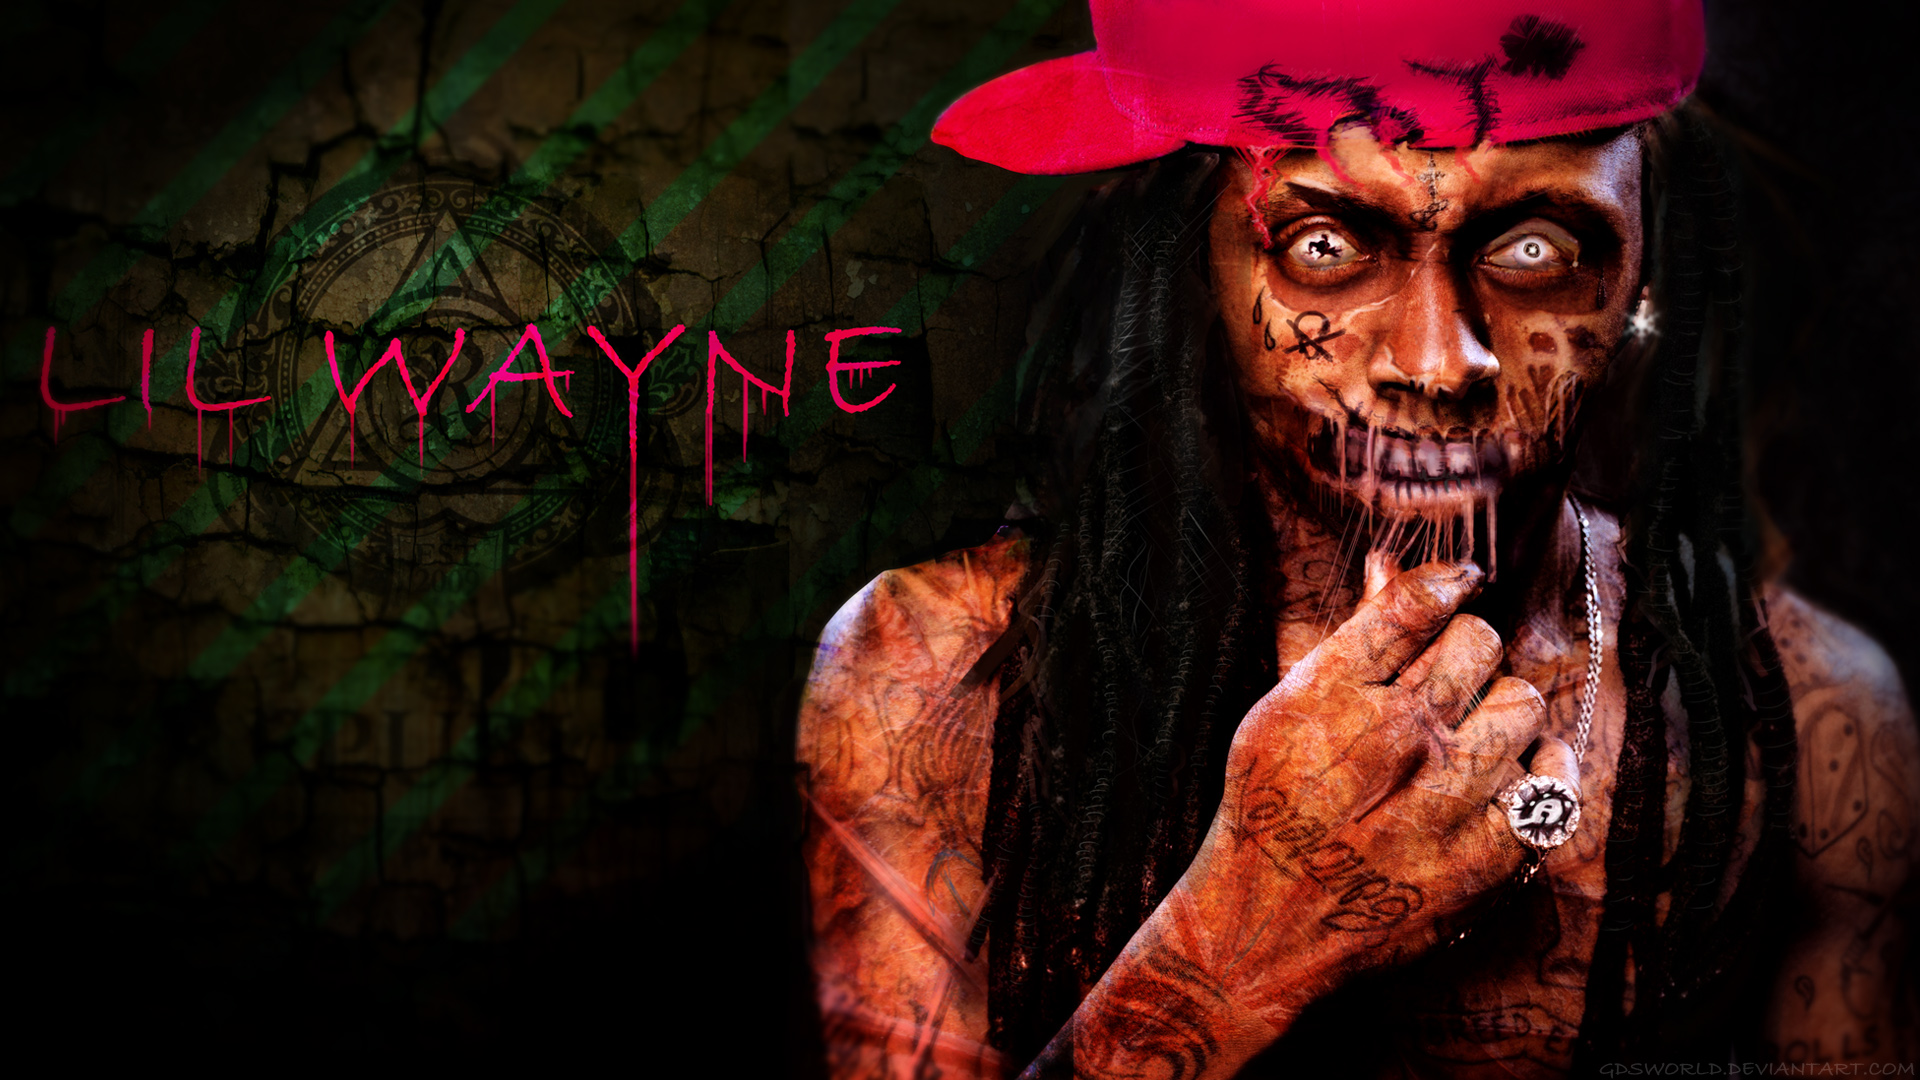 Lil Wayne Wallpaper  Hd NANOZINE 1920x1080